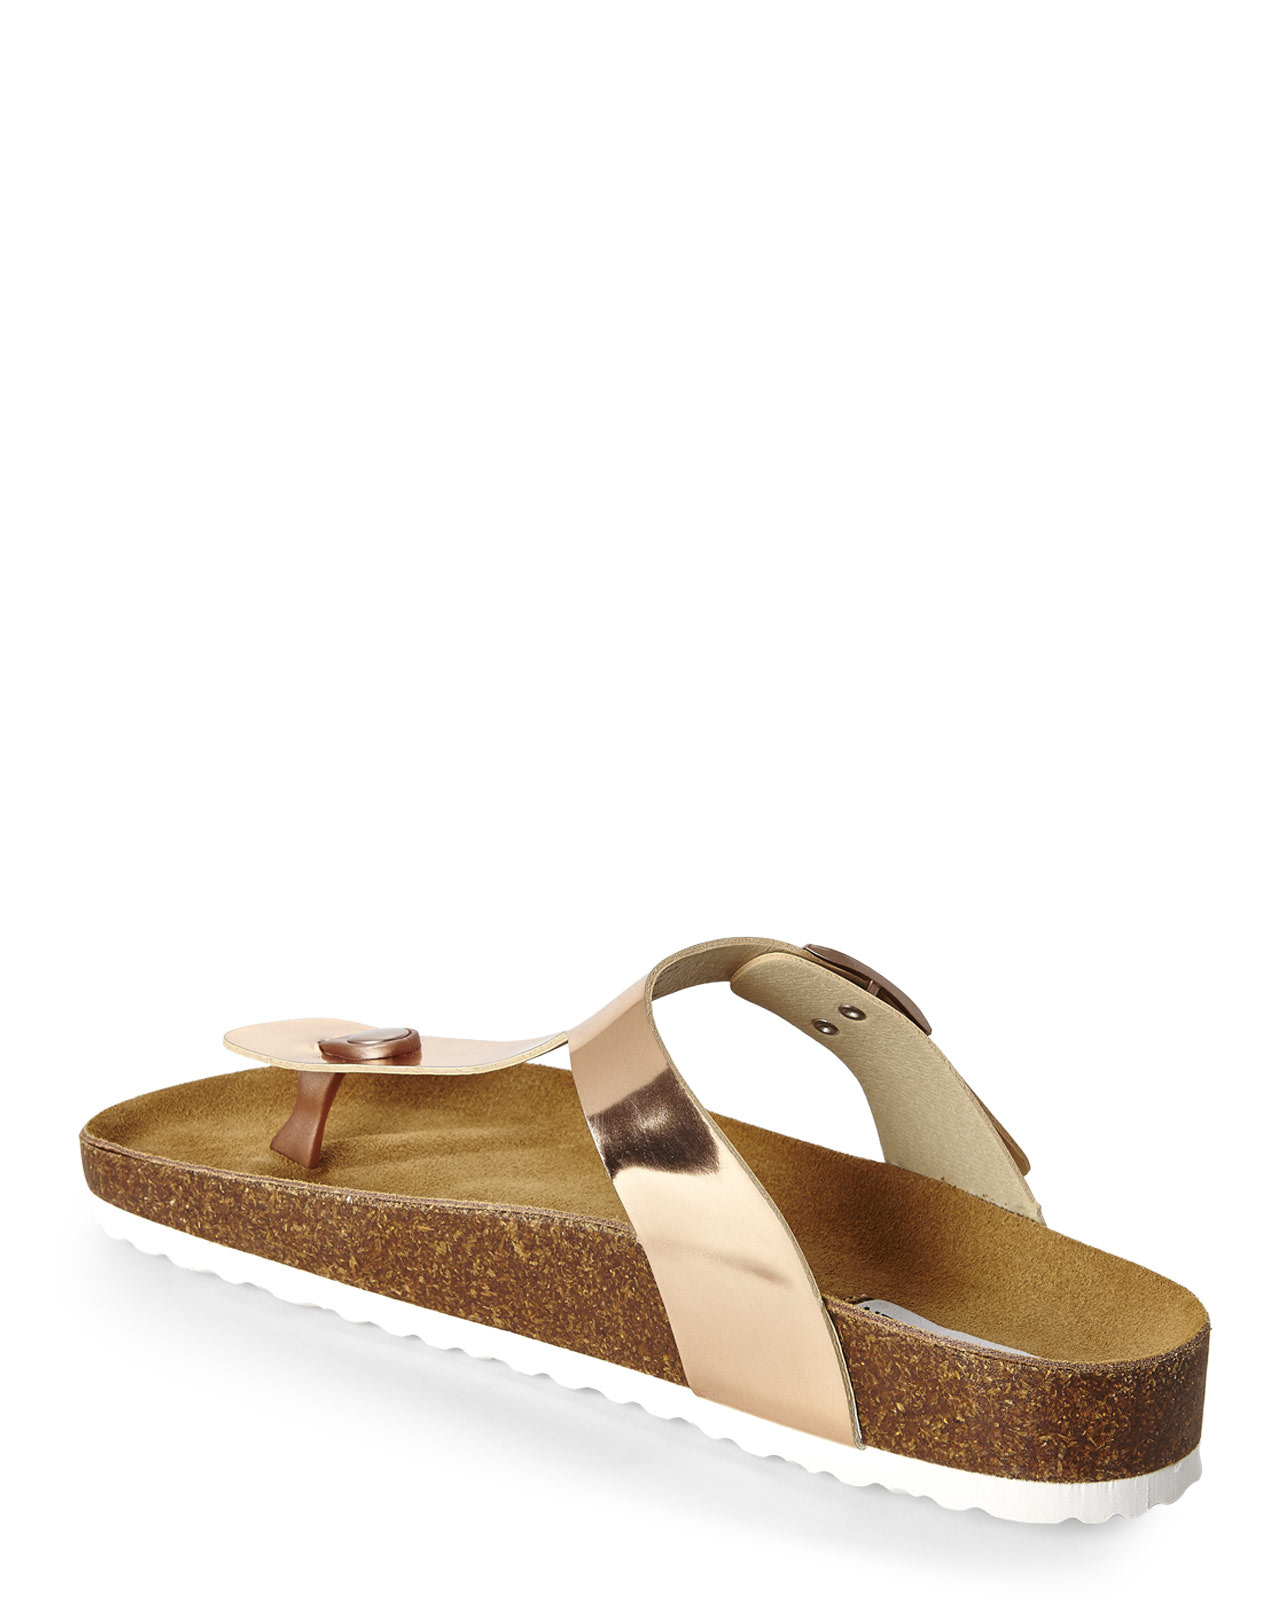 f825f190210d Steve Madden Rose Gold Footbed Thong Sandals in Metallic - Lyst